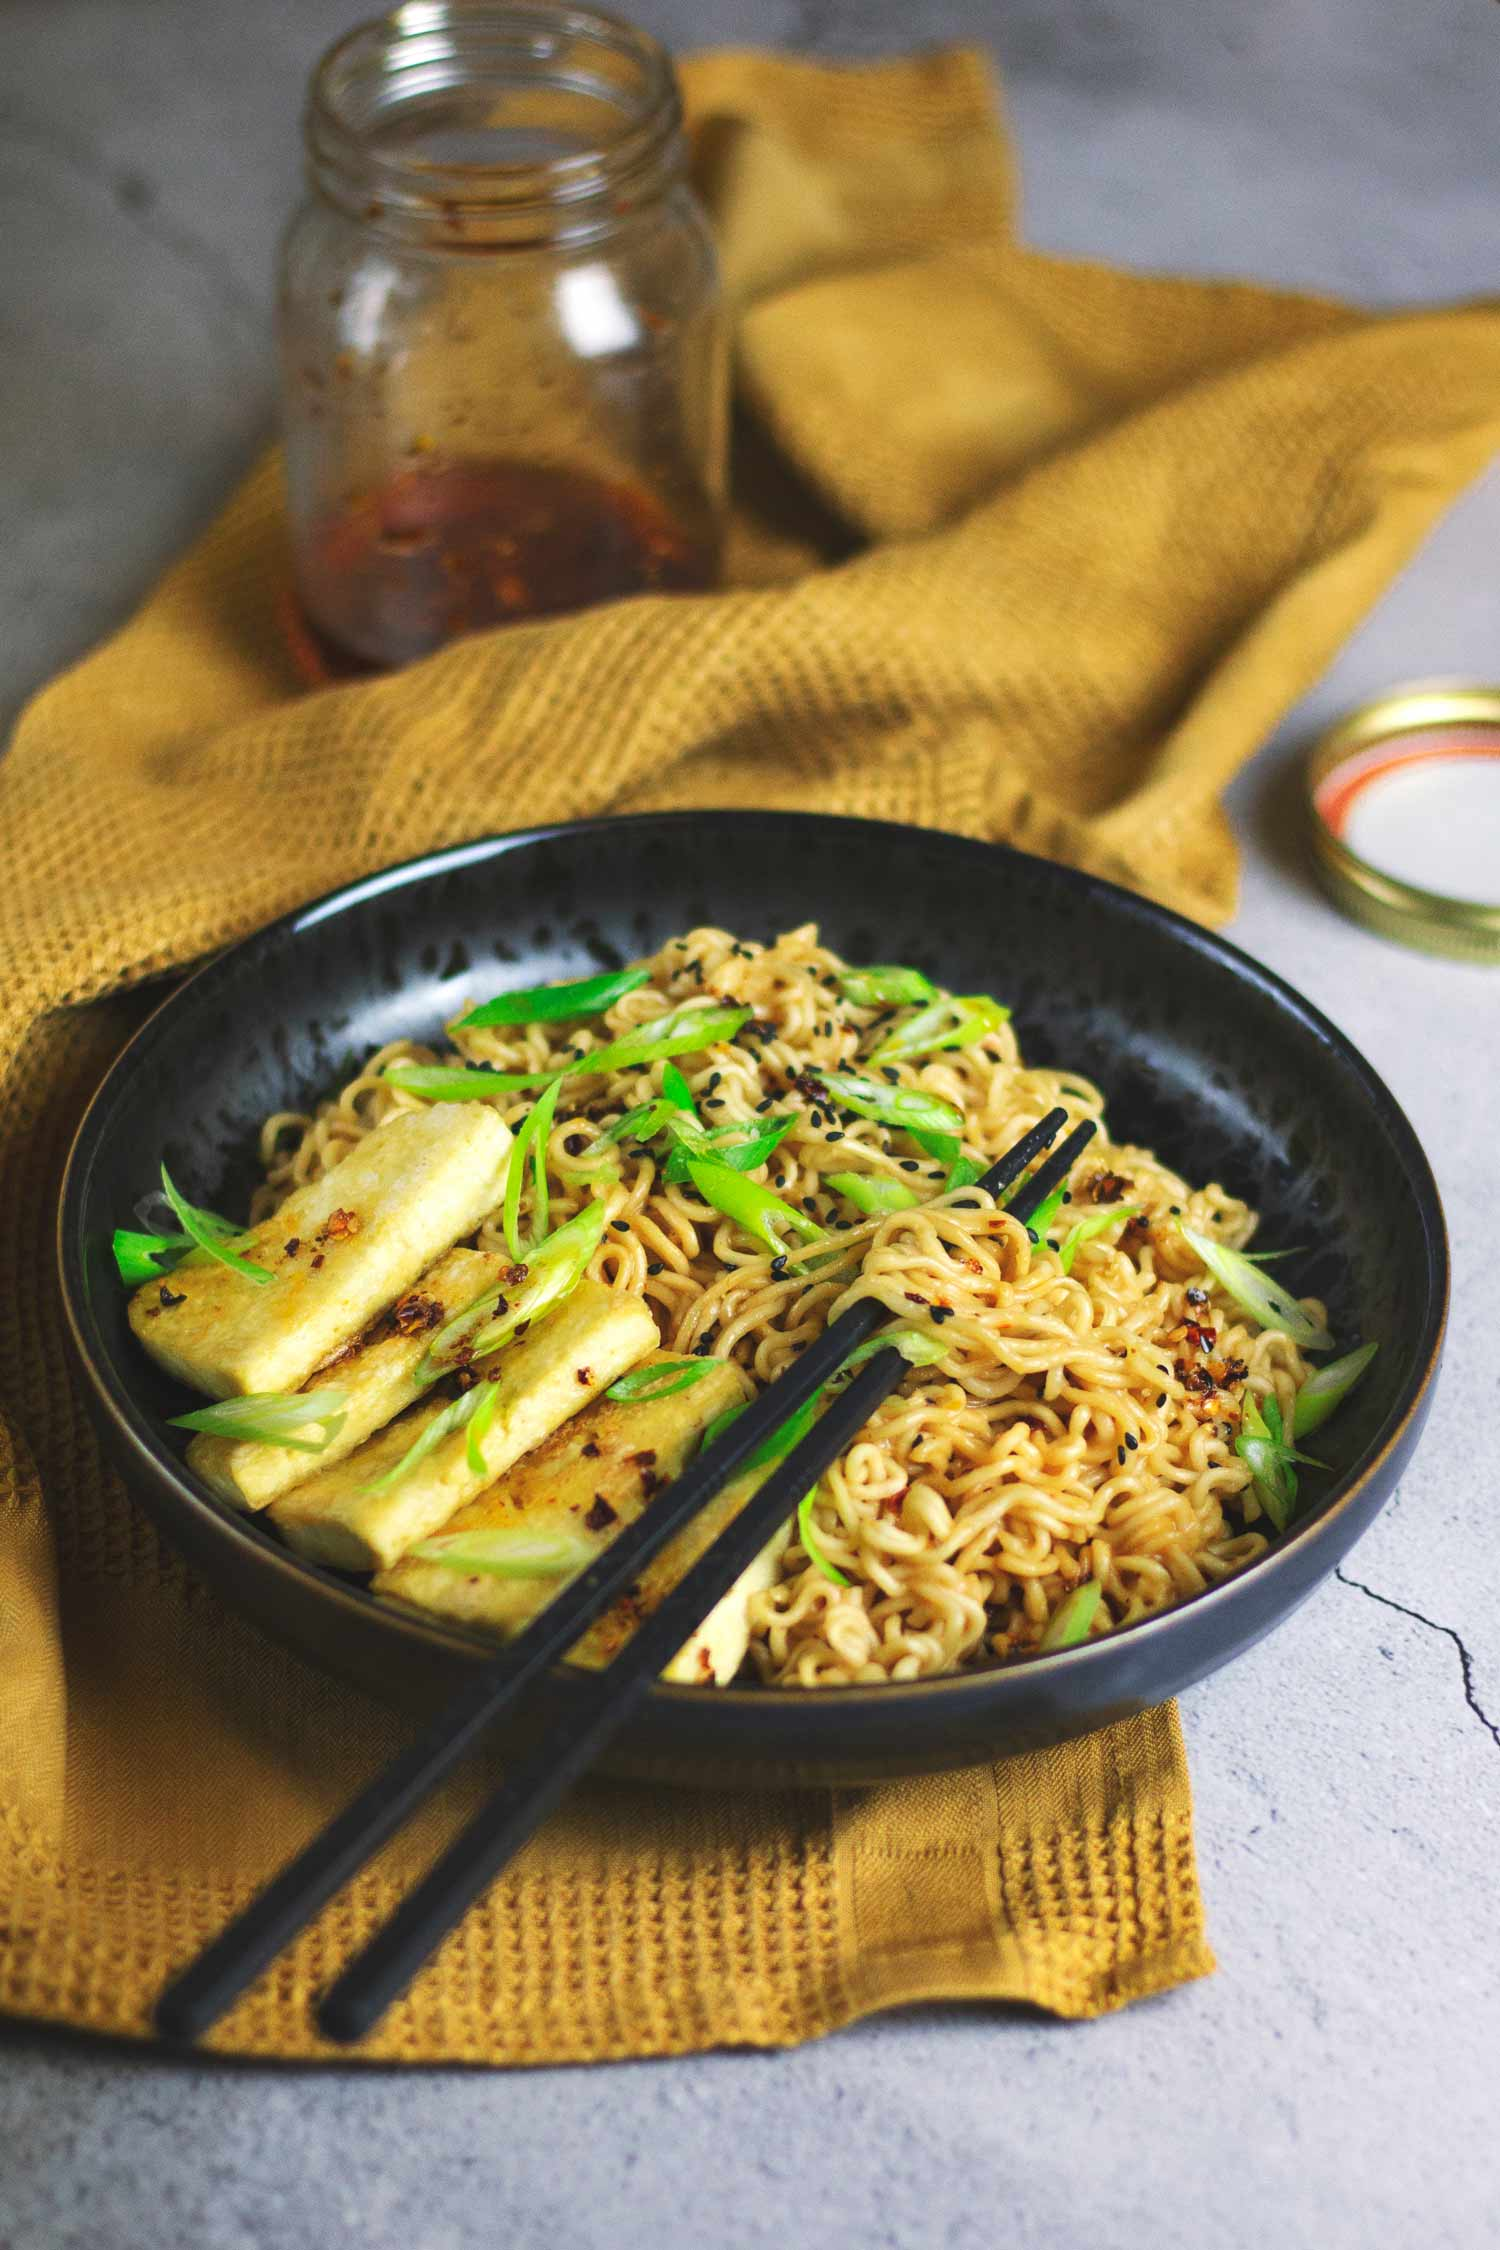 A bowl of peanut chilli noodles and tofu with chopsticks